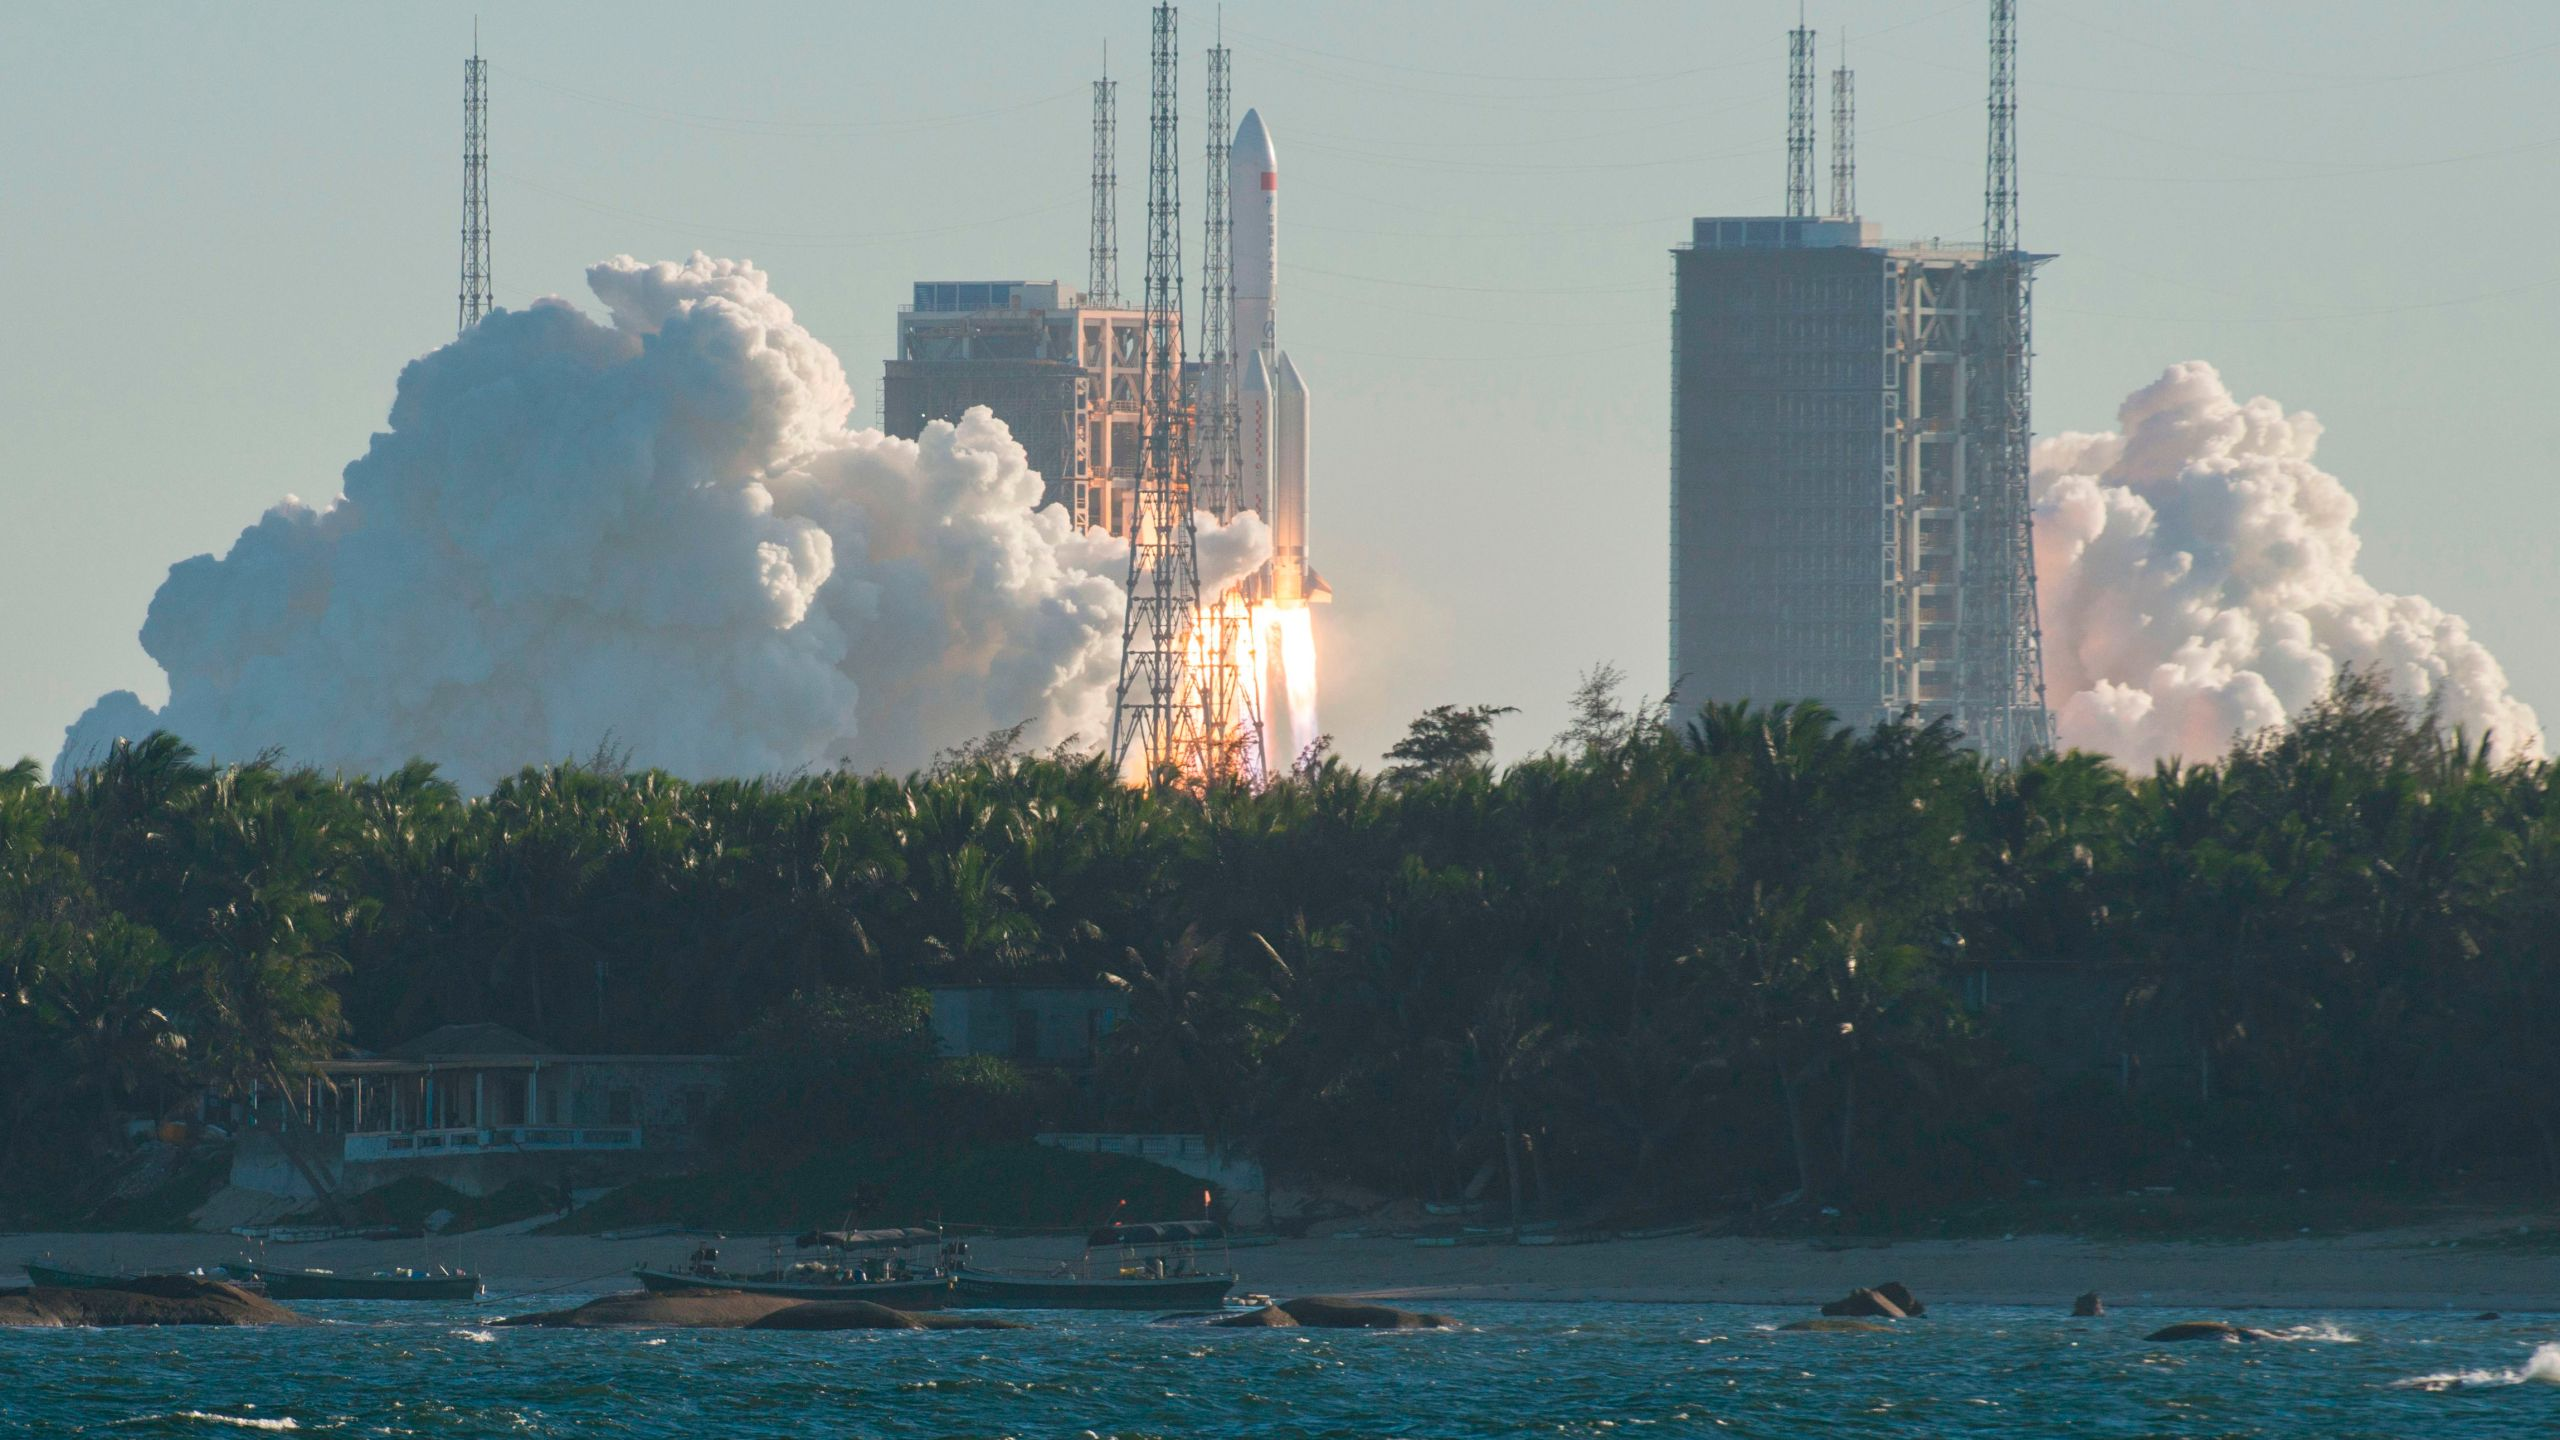 China launched its Long March-5B rocket with an unmanned prototype spacecraft on May 5. (Photo by STR/AFP via Getty Images)